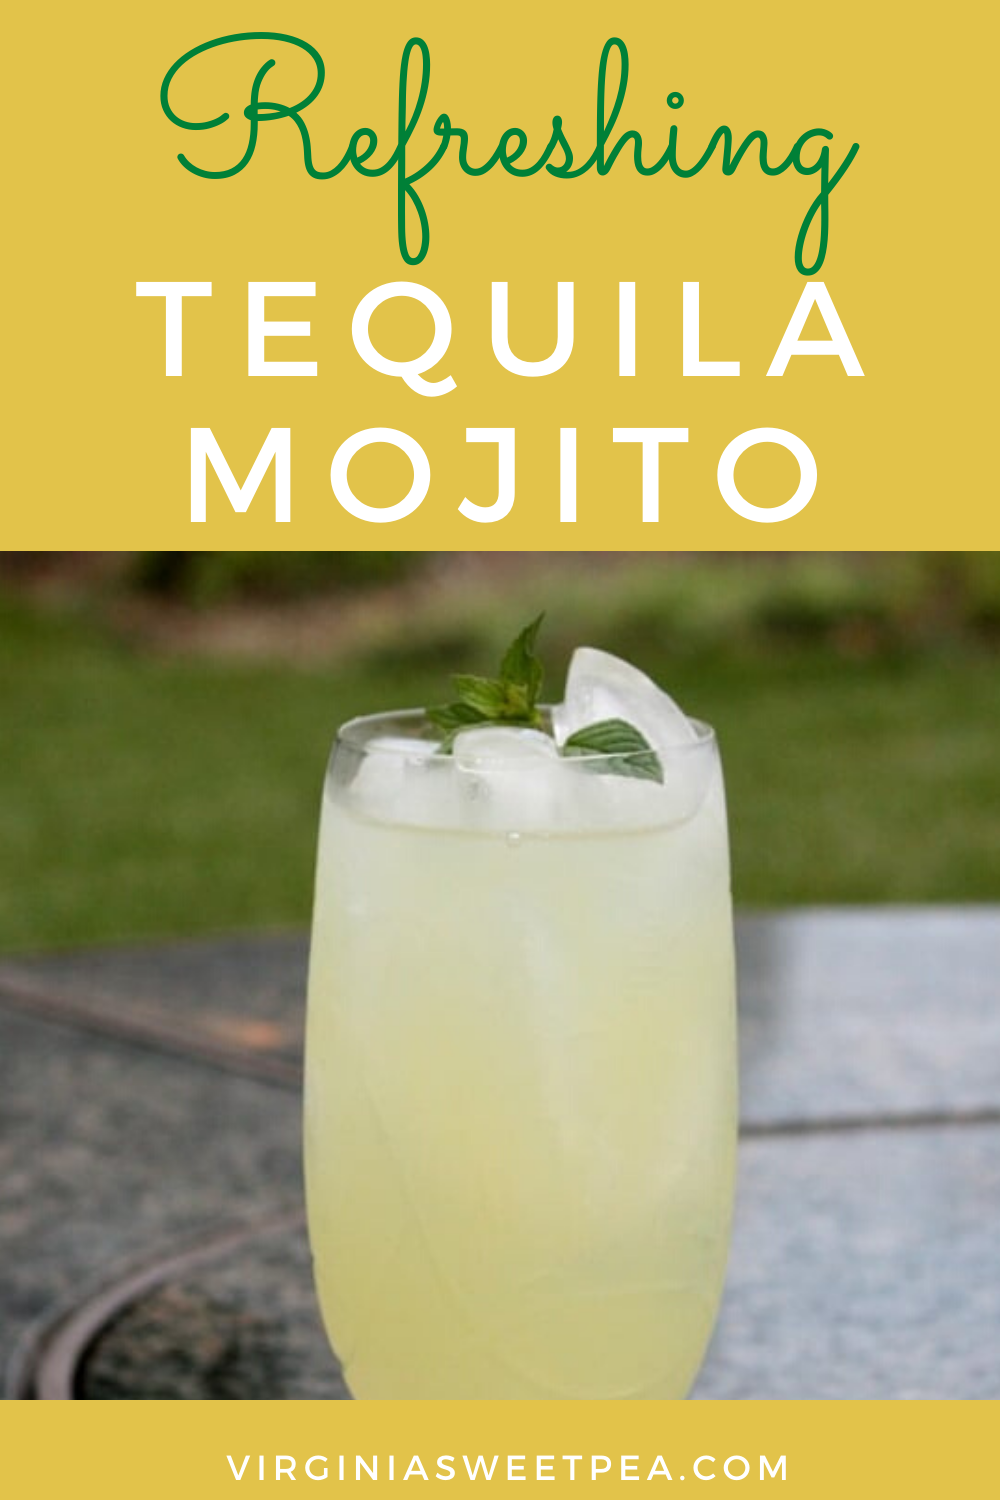 Tequila Mojito - A tequila mojito is a refreshing summer cocktail.  Lime juice, Sprite, tequila, and mint syrup are combined to make this tasty treat.  #tequilamojito #mojito via @spaula